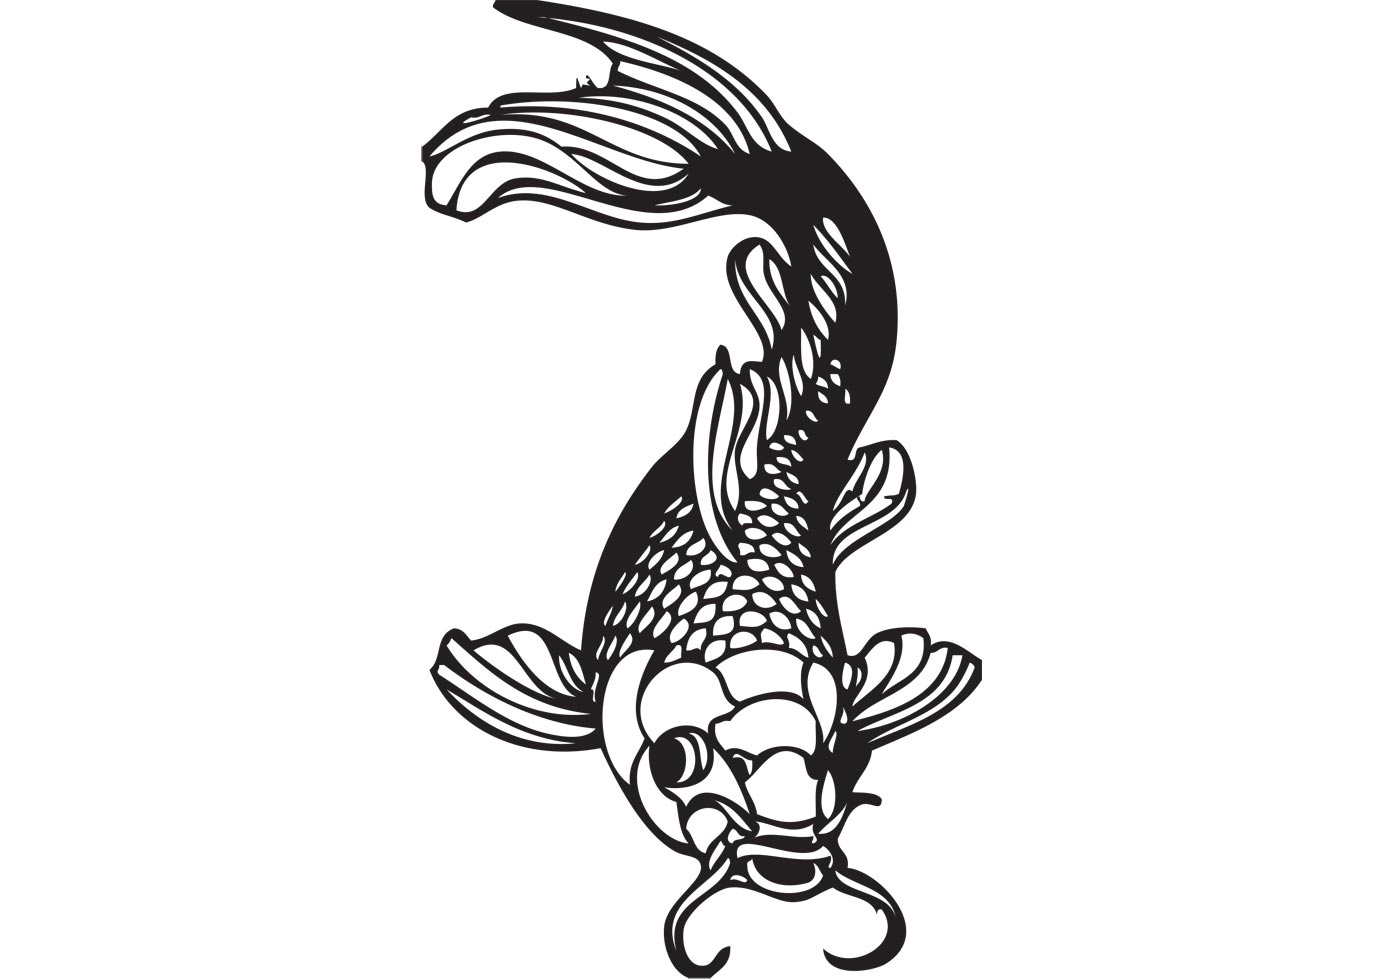 Coi download free vector art stock graphics images for Koi fish vector